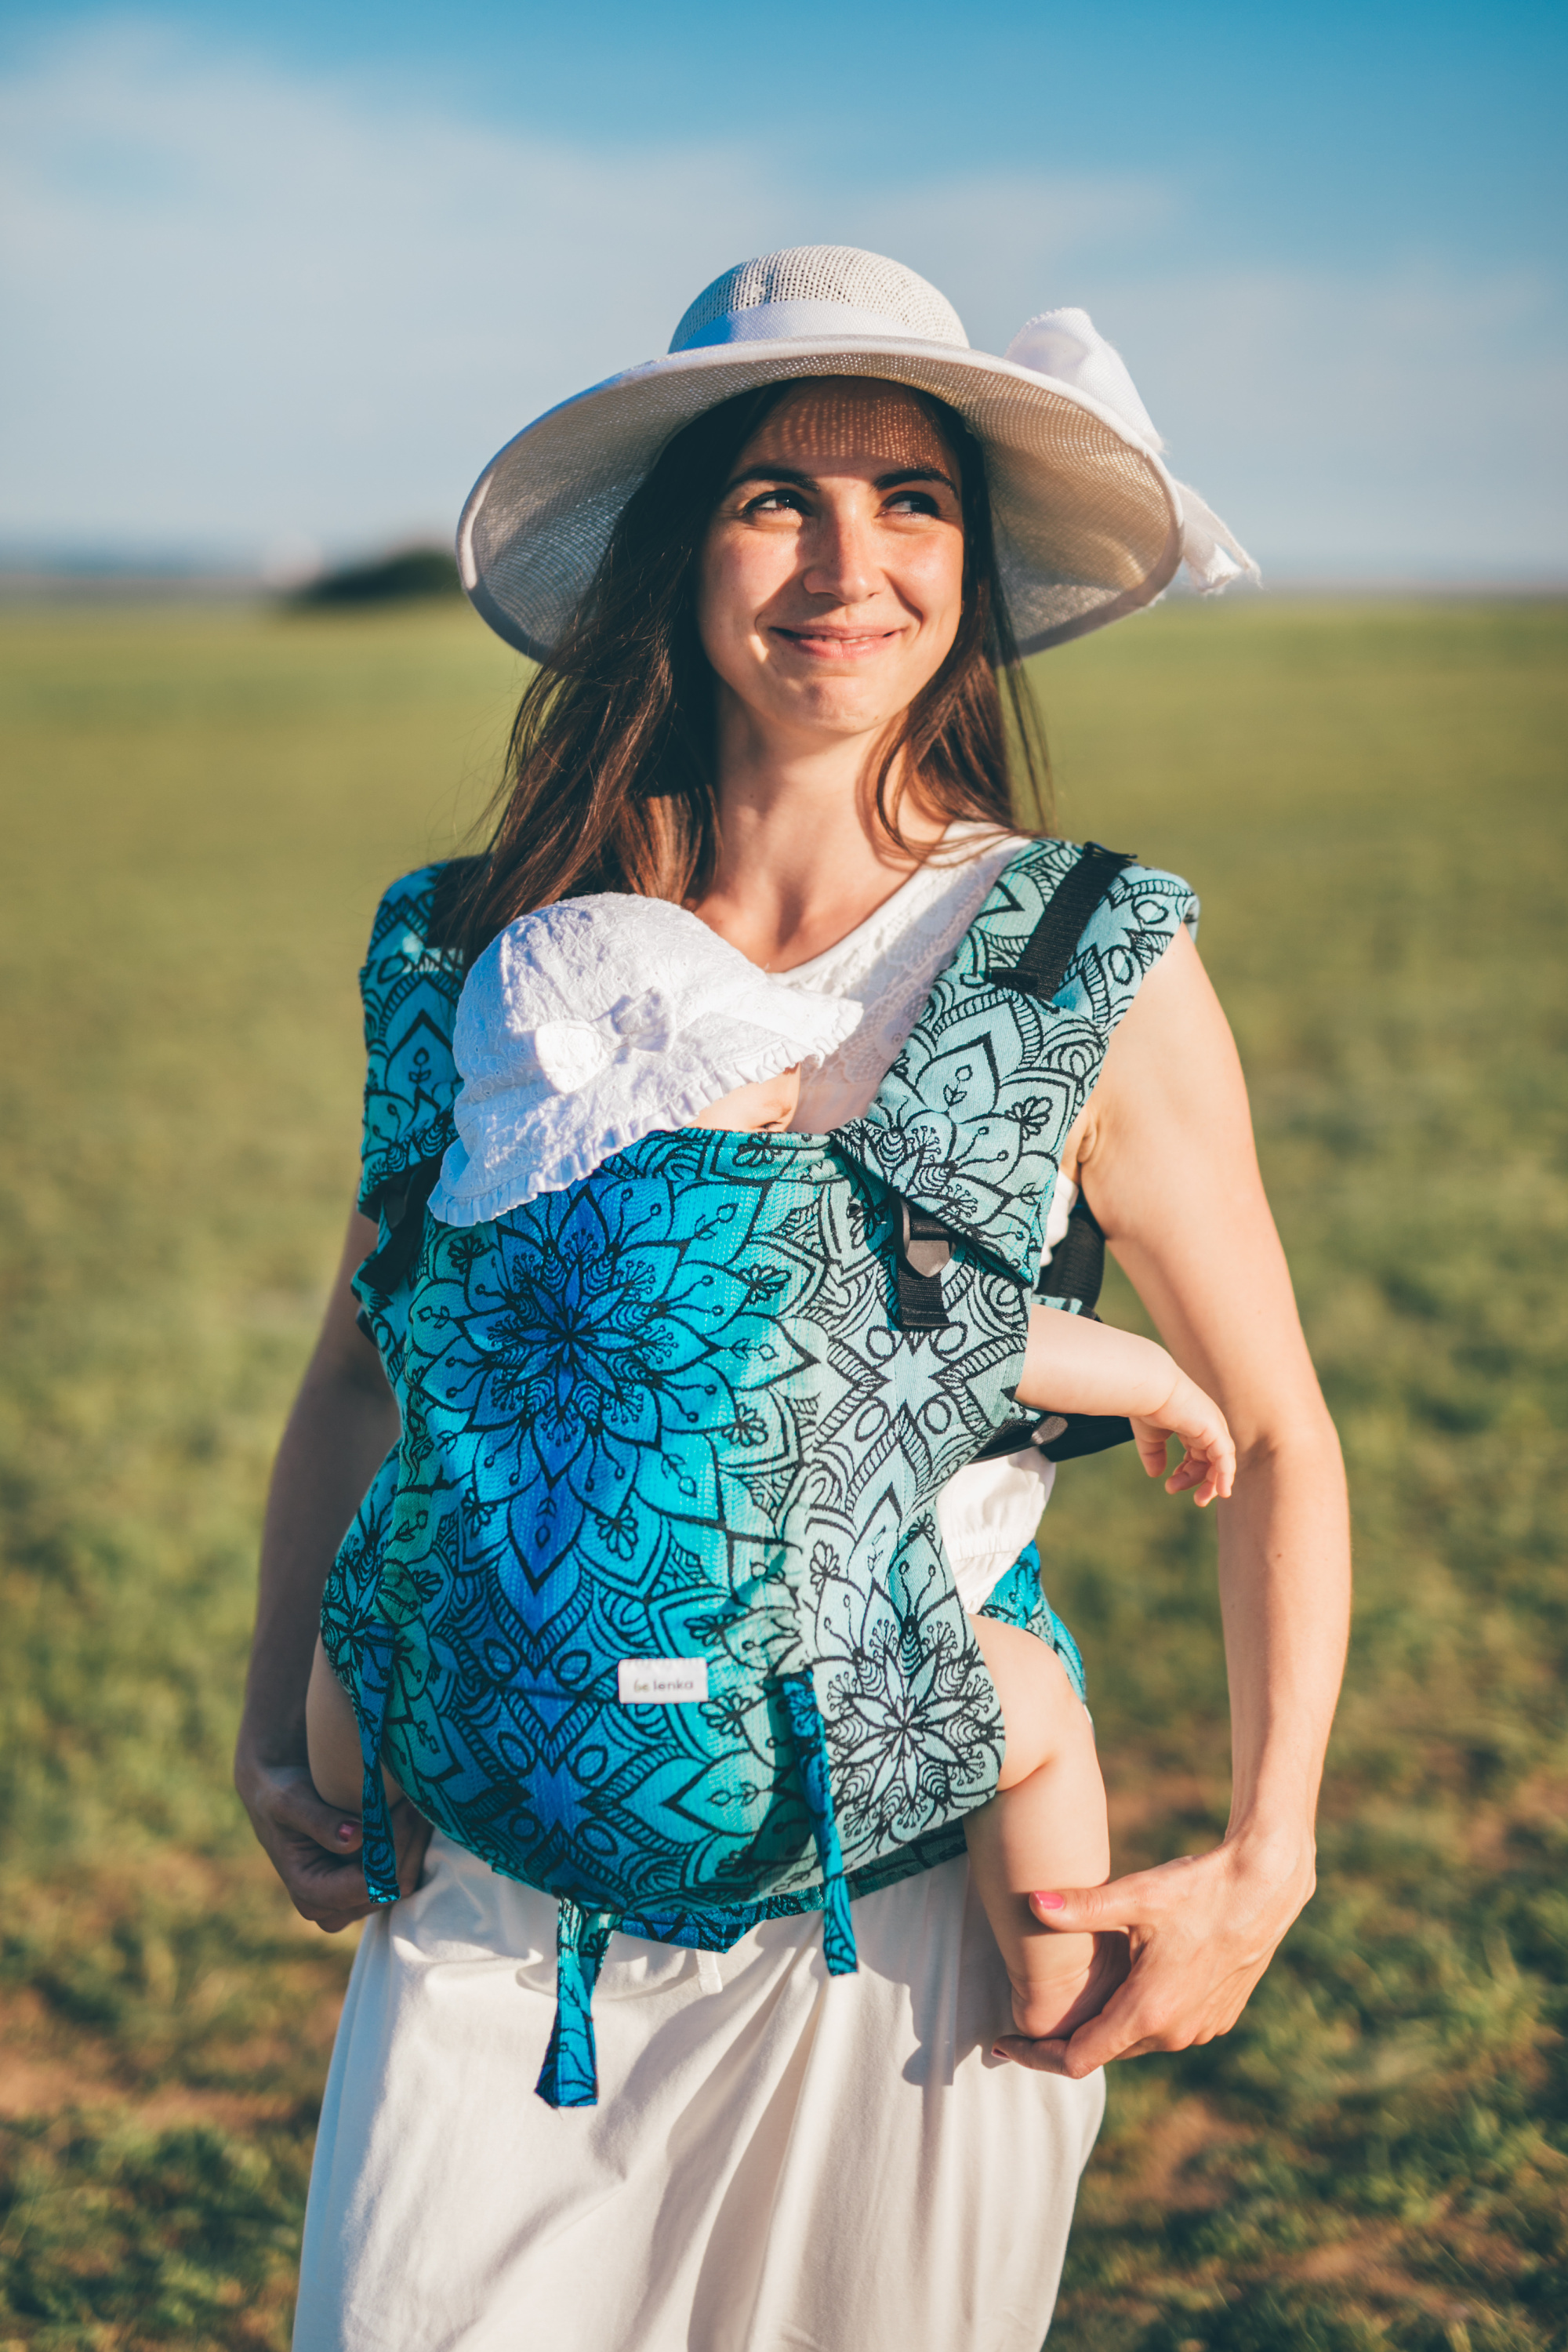 Baby Carrier - Be Lenka 4ever Mandala - Polar Night classic without the possibility of crossing